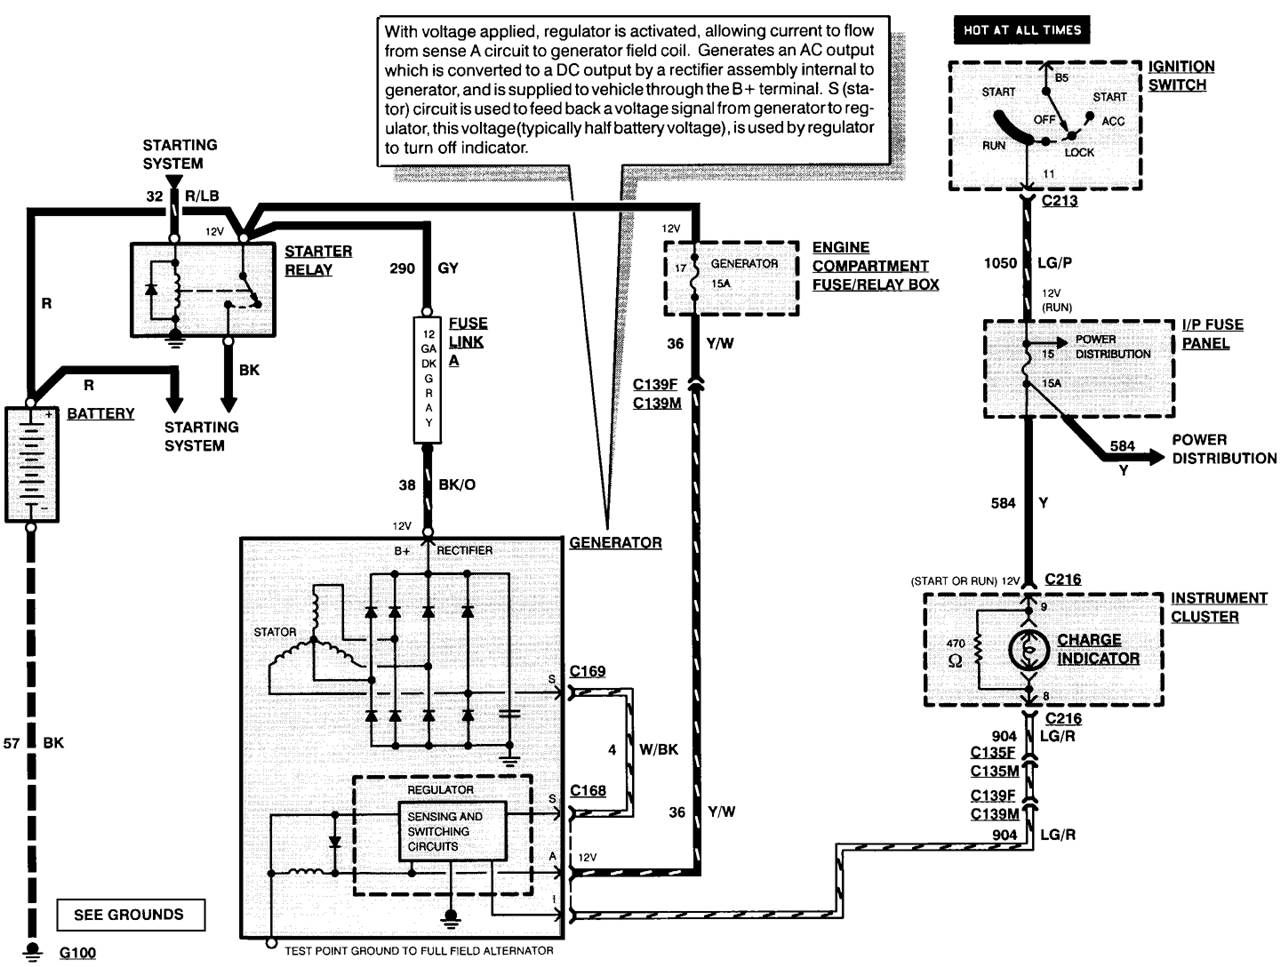 ford model a generator wiring diagram with Ford Alternator Wiring Diagrams on Viewit as well 2005 Holiday Rambler Wiring Schematics together with Cs2  pression Sustainer furthermore 6v Flathead Ballast Resistor Failure together with For A John Deere X585 Tractor Wiring Diagram.